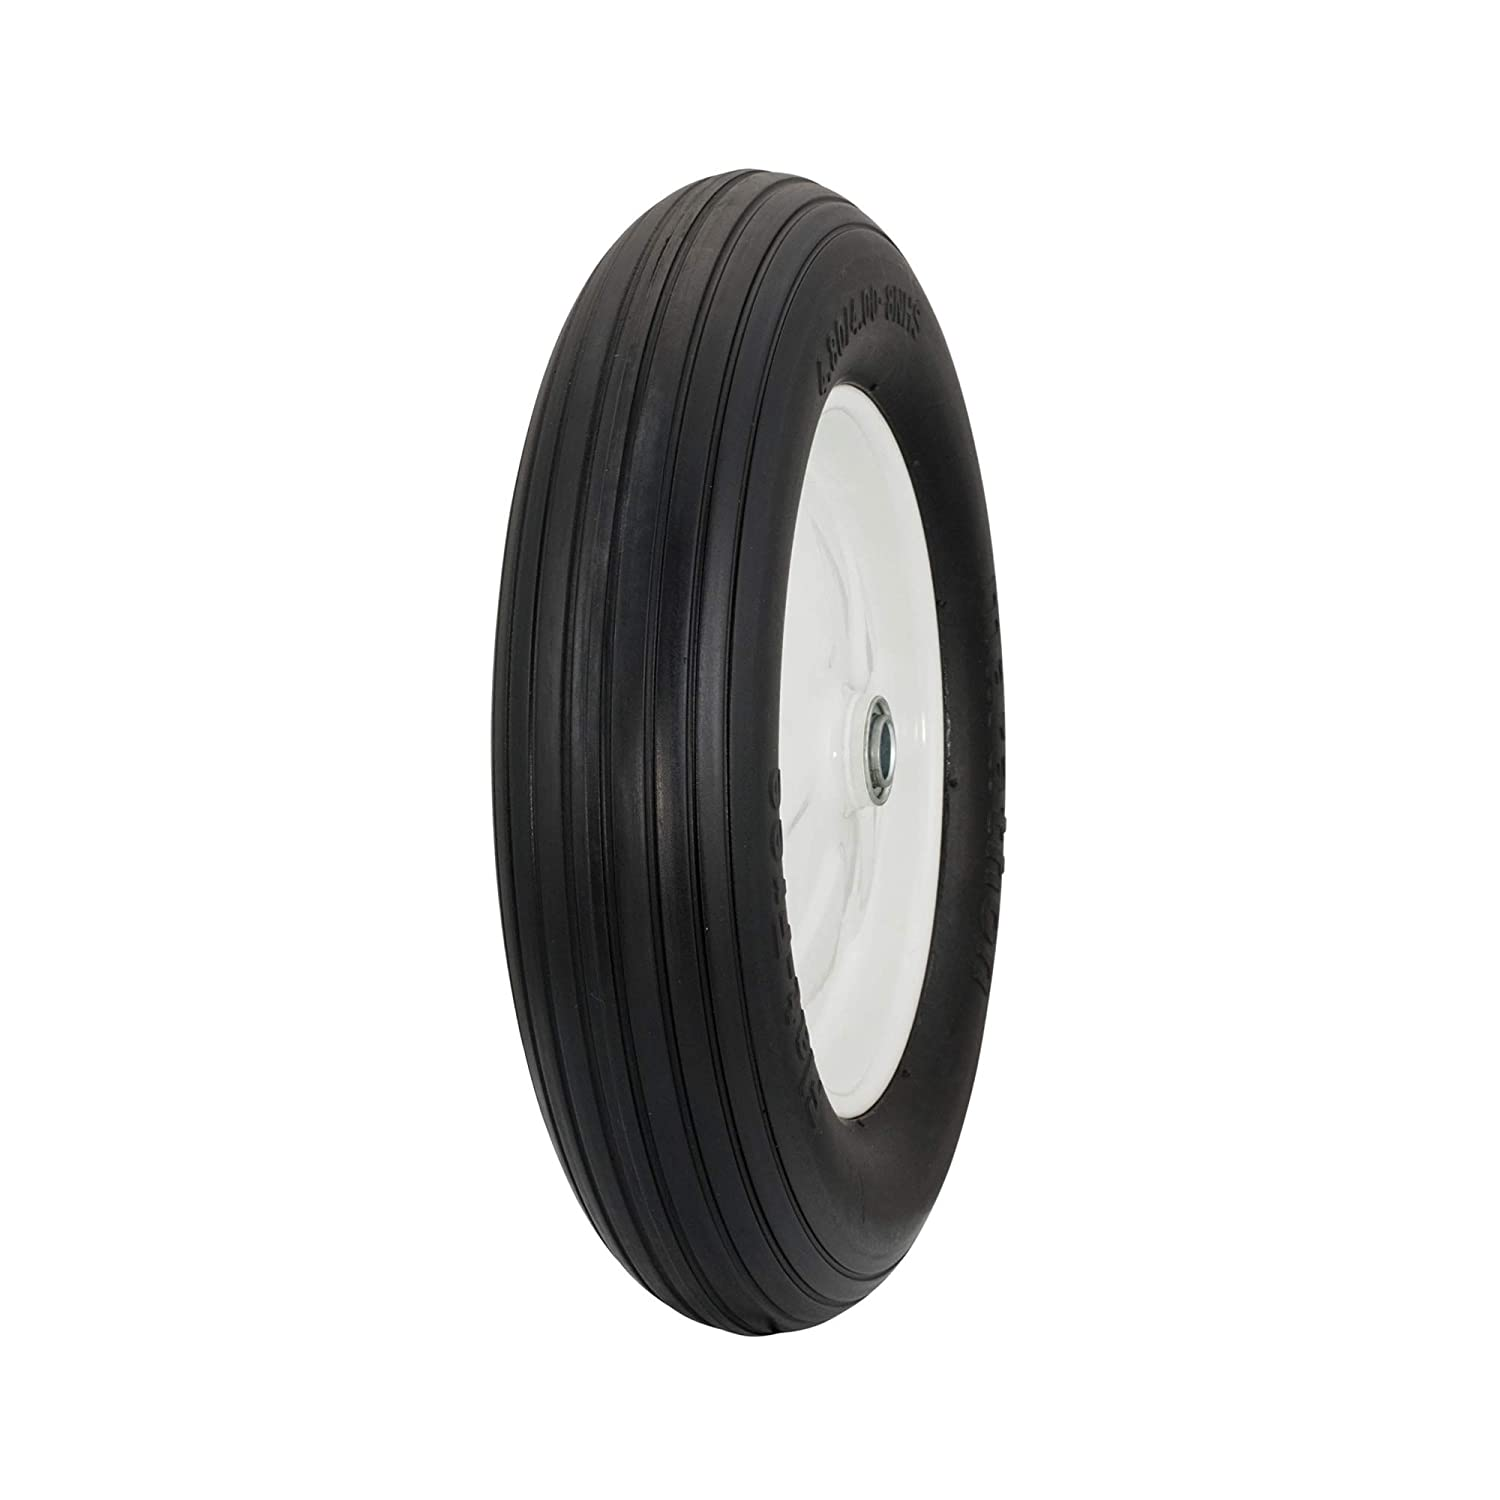 "Marathon 4.80/4.00-8"" Flat Free Tire on Wheel, 3"" Hub, 3/4"" Bearings, Ribbed Tread"